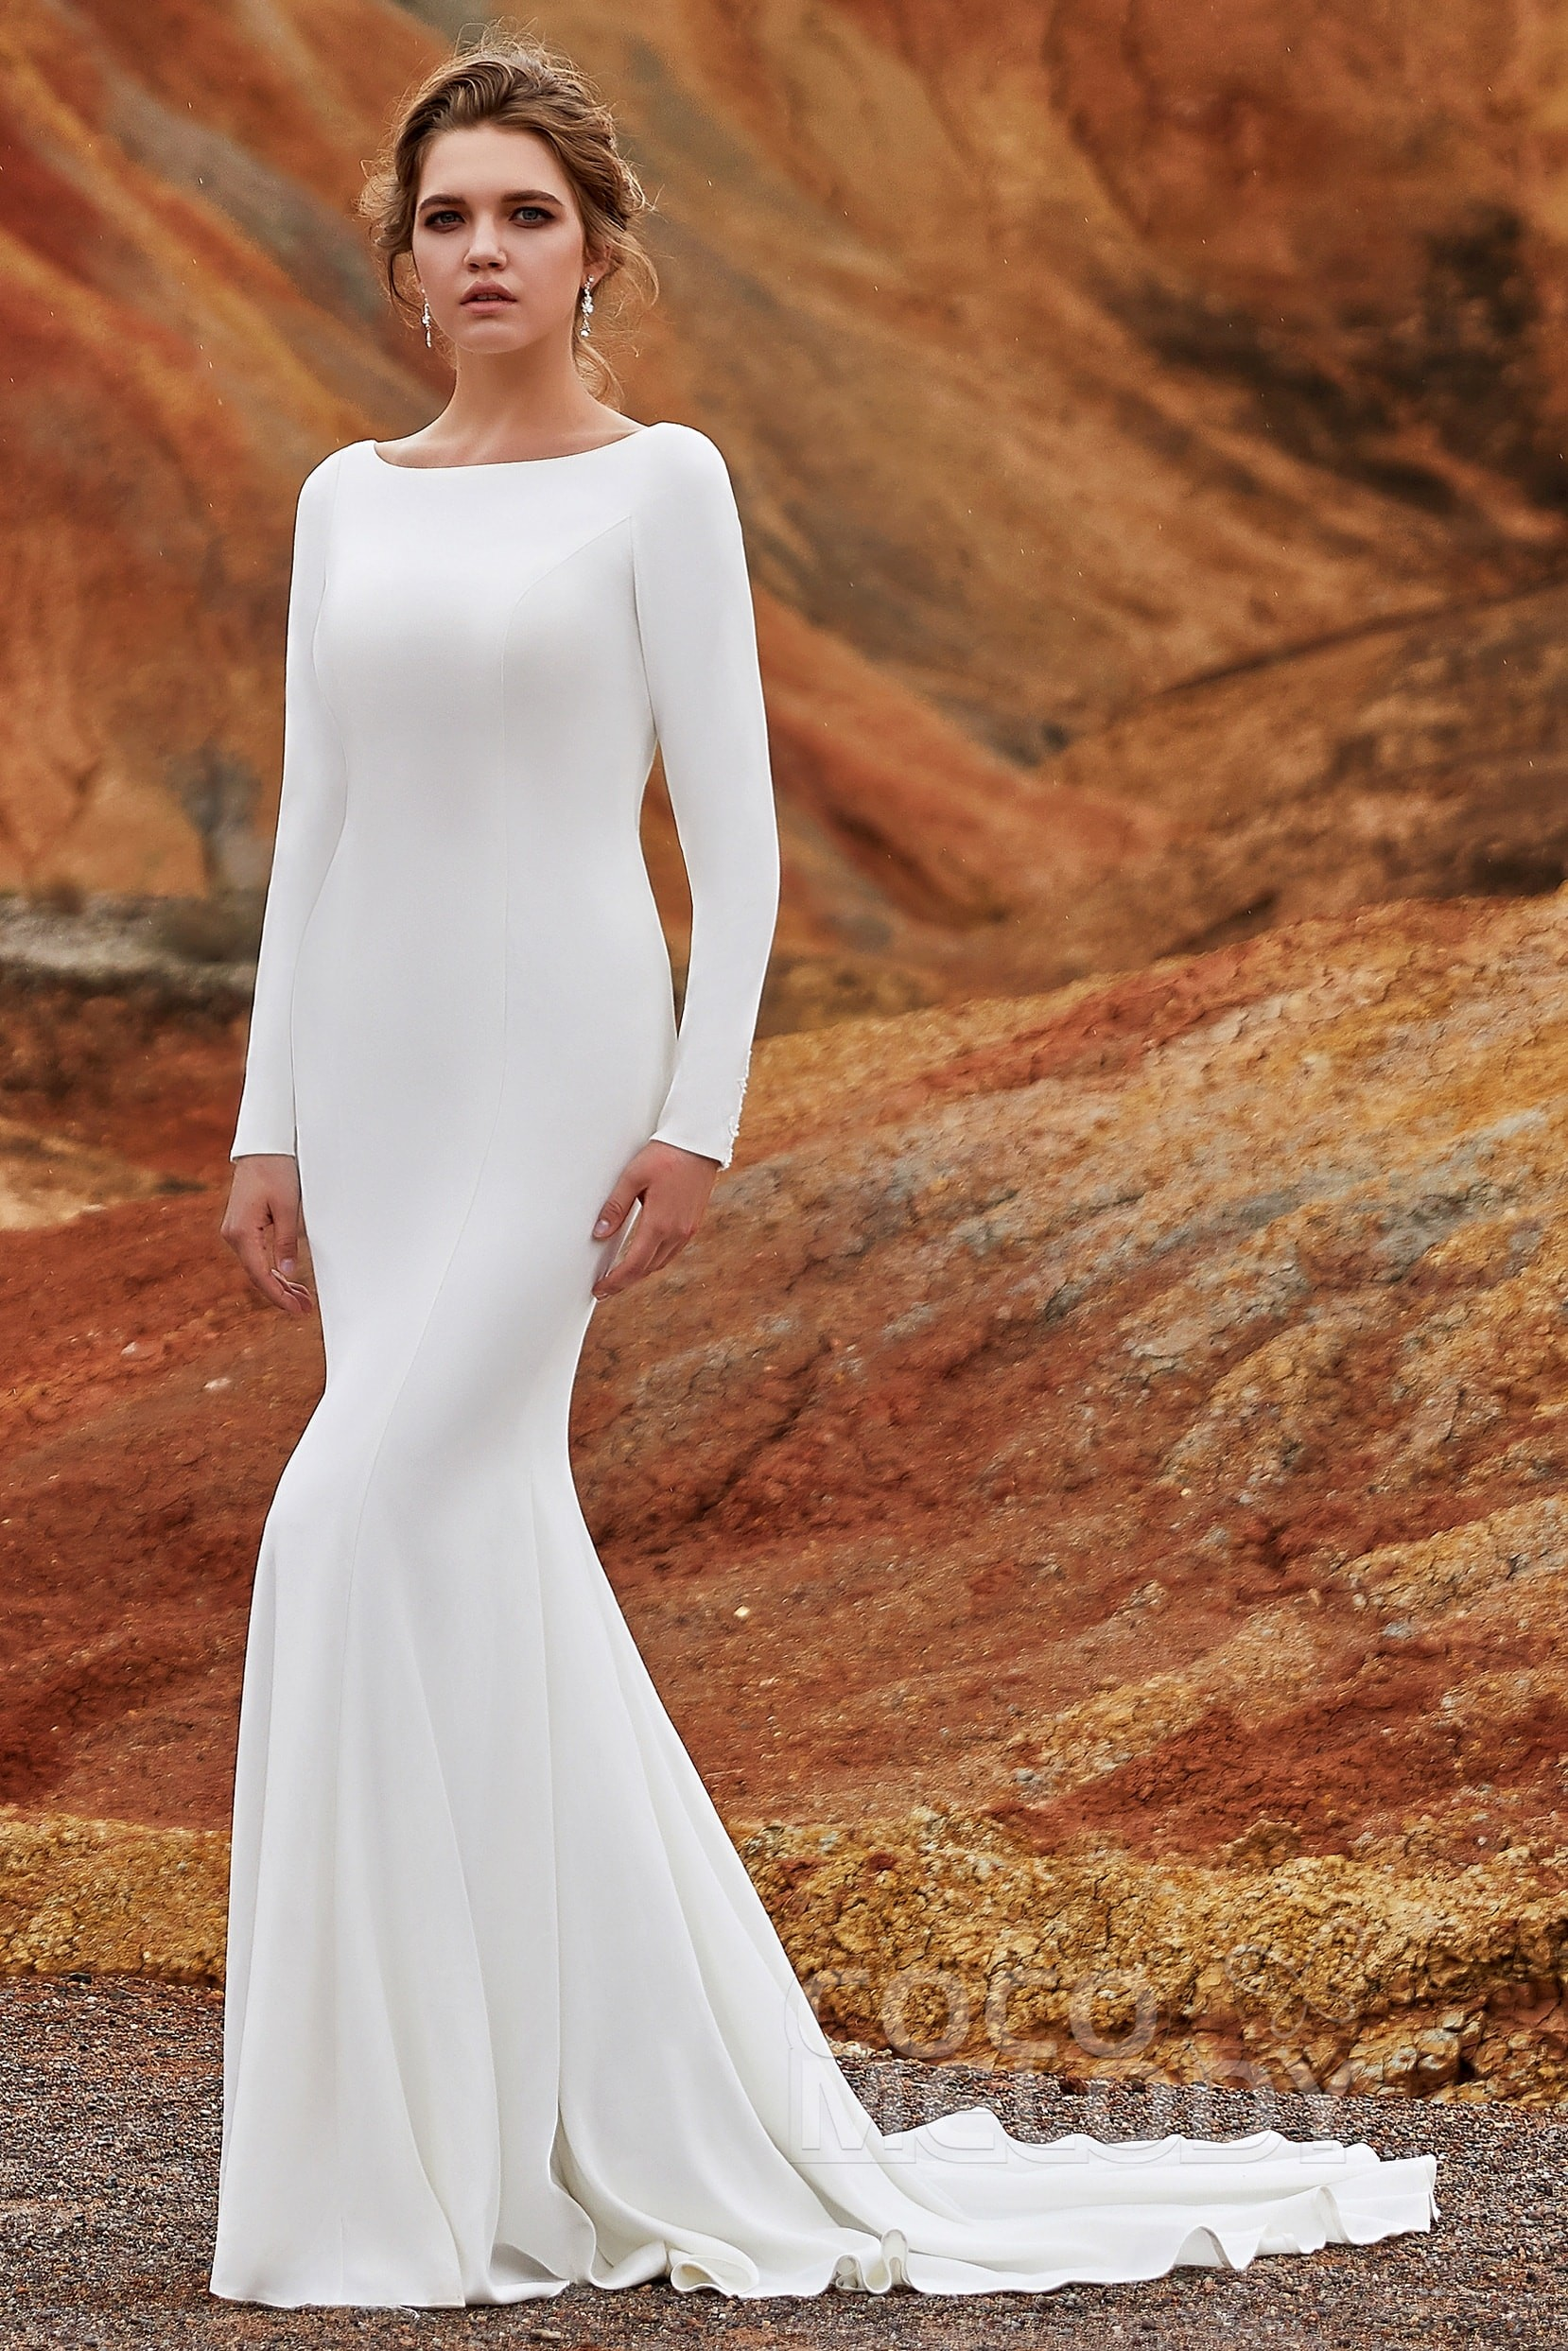 Try at Home Trumpet-Mermaid Bateau Knitted Fabric Wedding ...